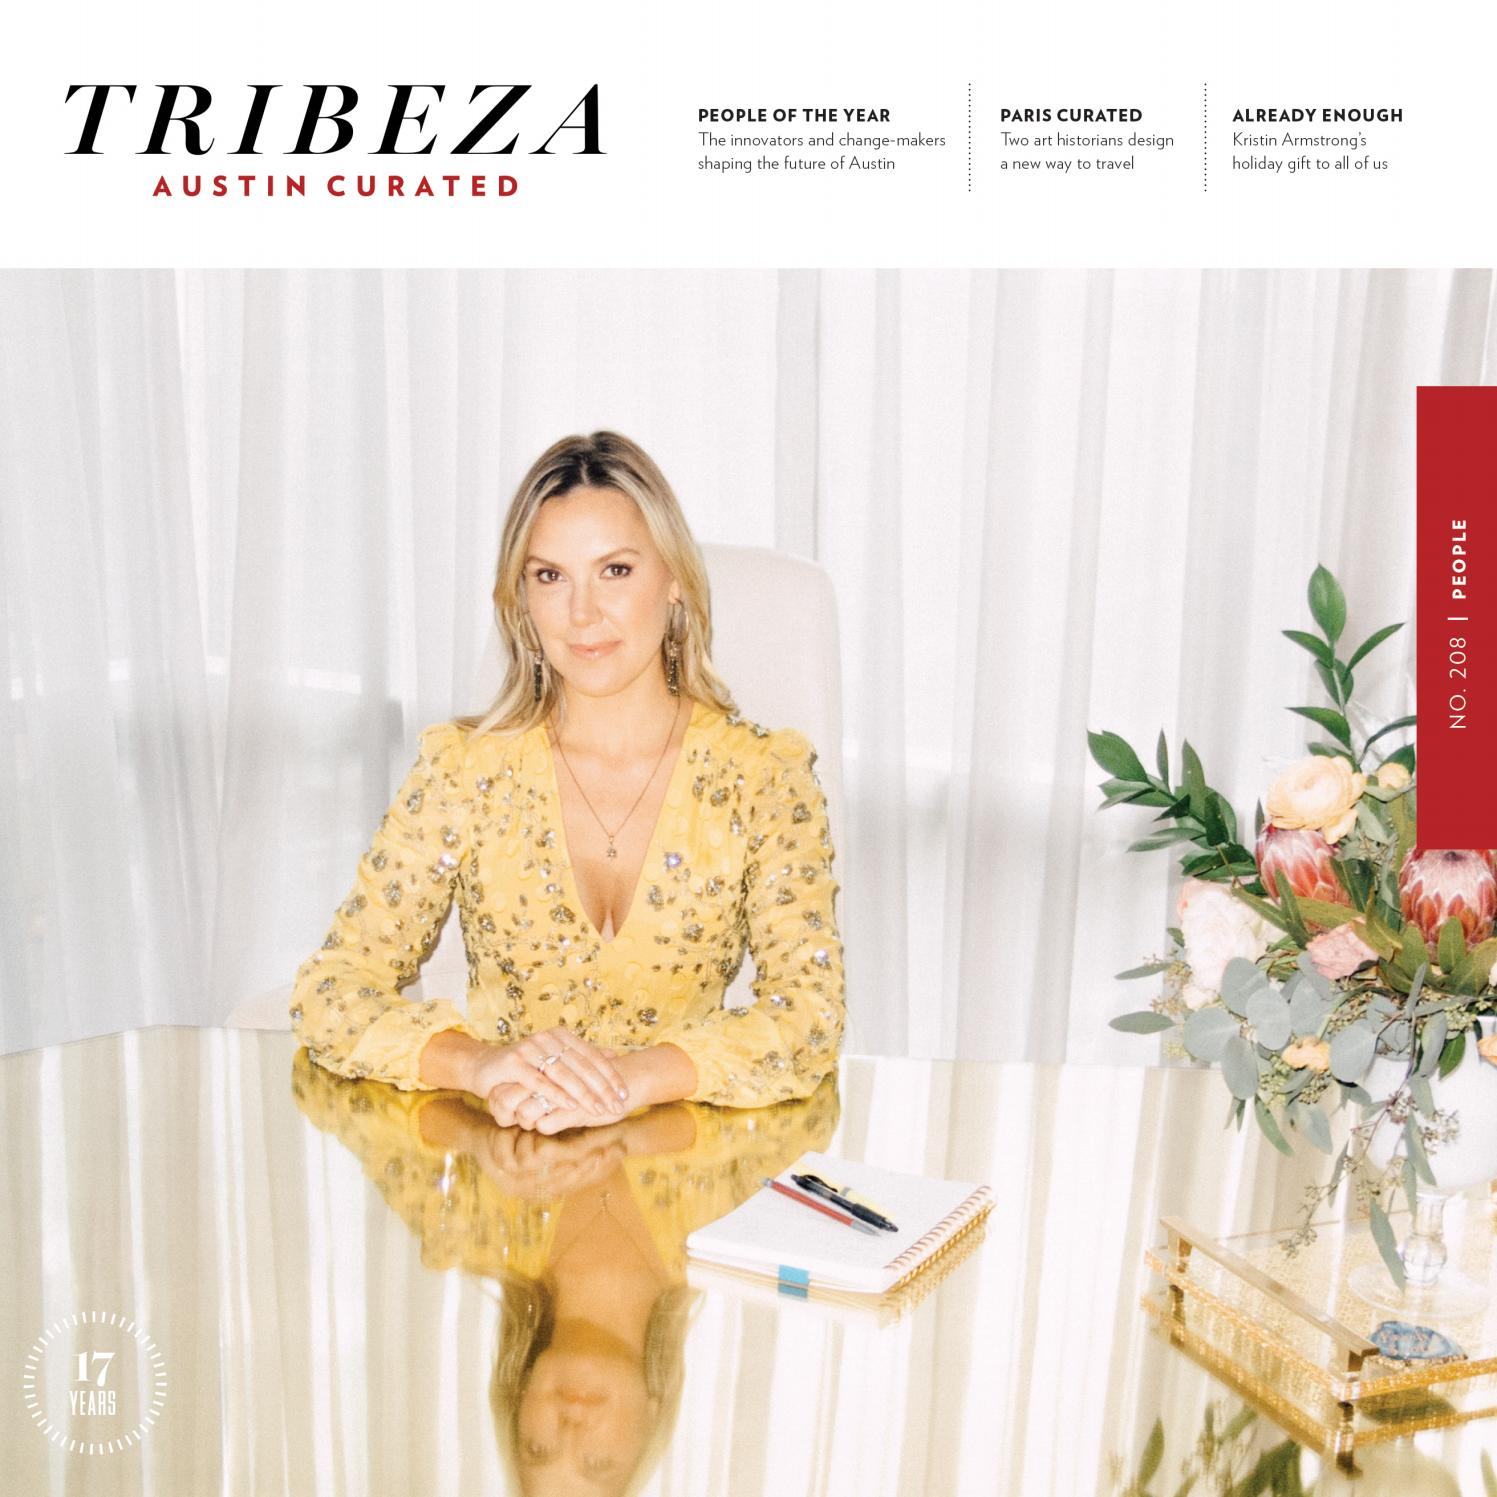 Tribeza December 2018 By Austin Curated Issuu Squishy Circuits Makers As Innovators Hardcover Target